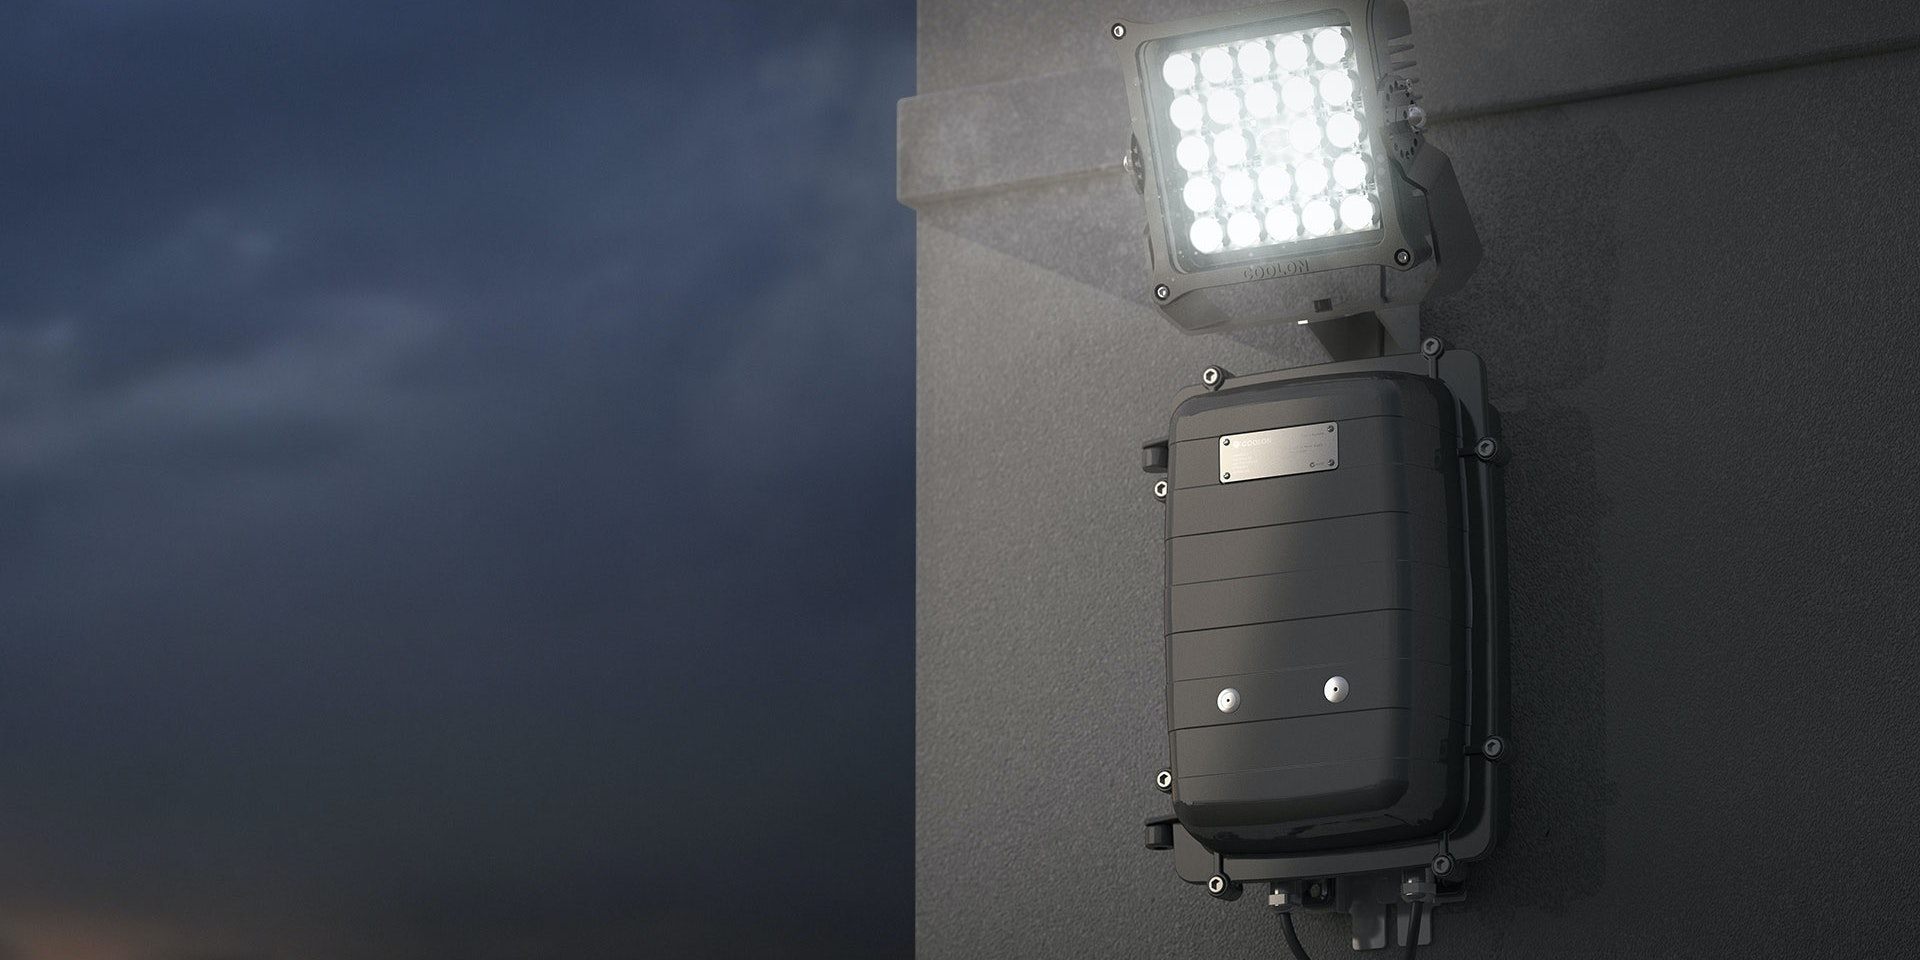 Warden LED Flood Light in application,installed on a wall on an industrial / mine site